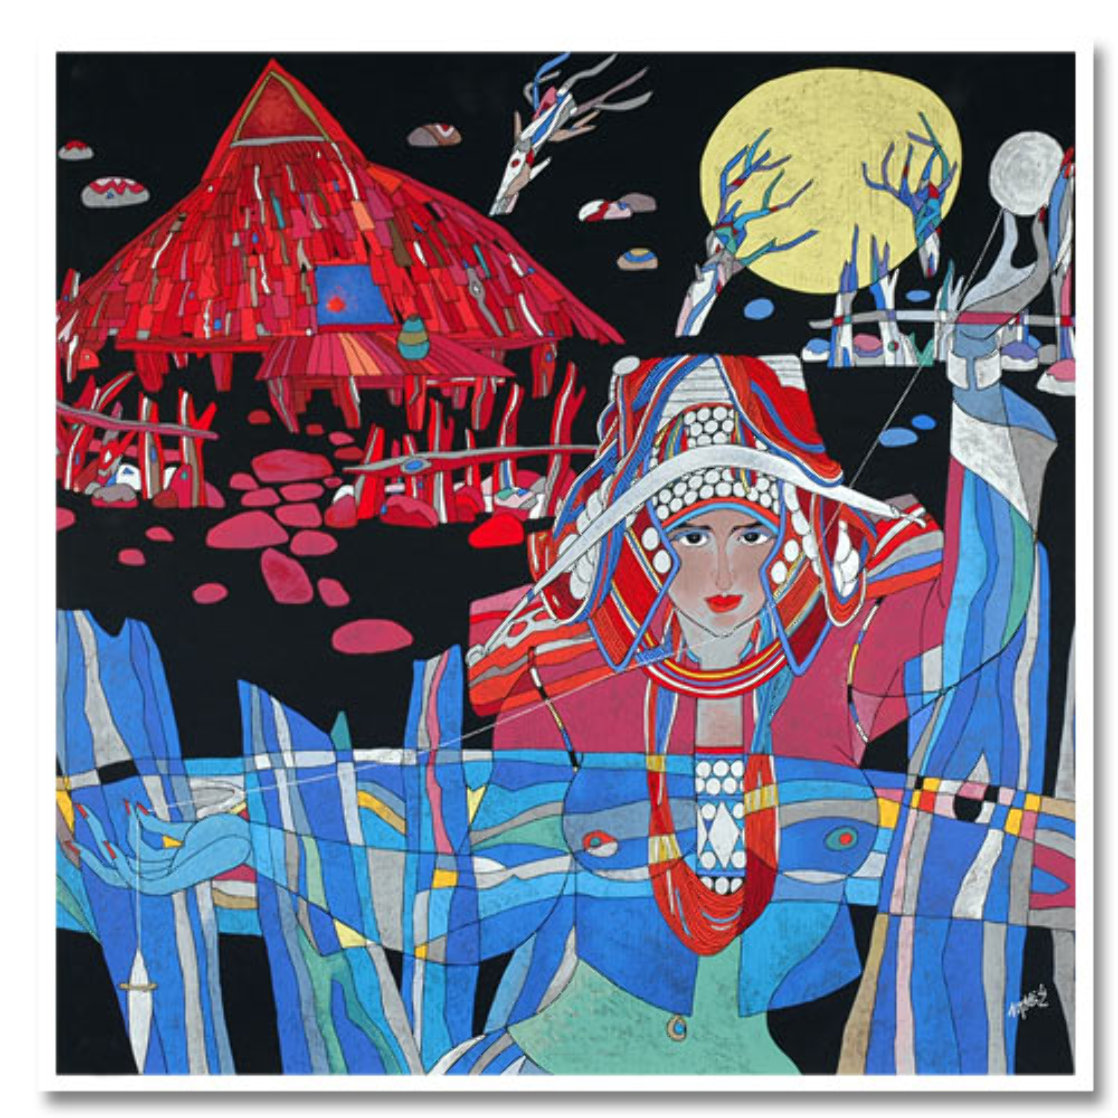 Lady With Thread 1989 38x37 Huge  Limited Edition Print by He Deguang